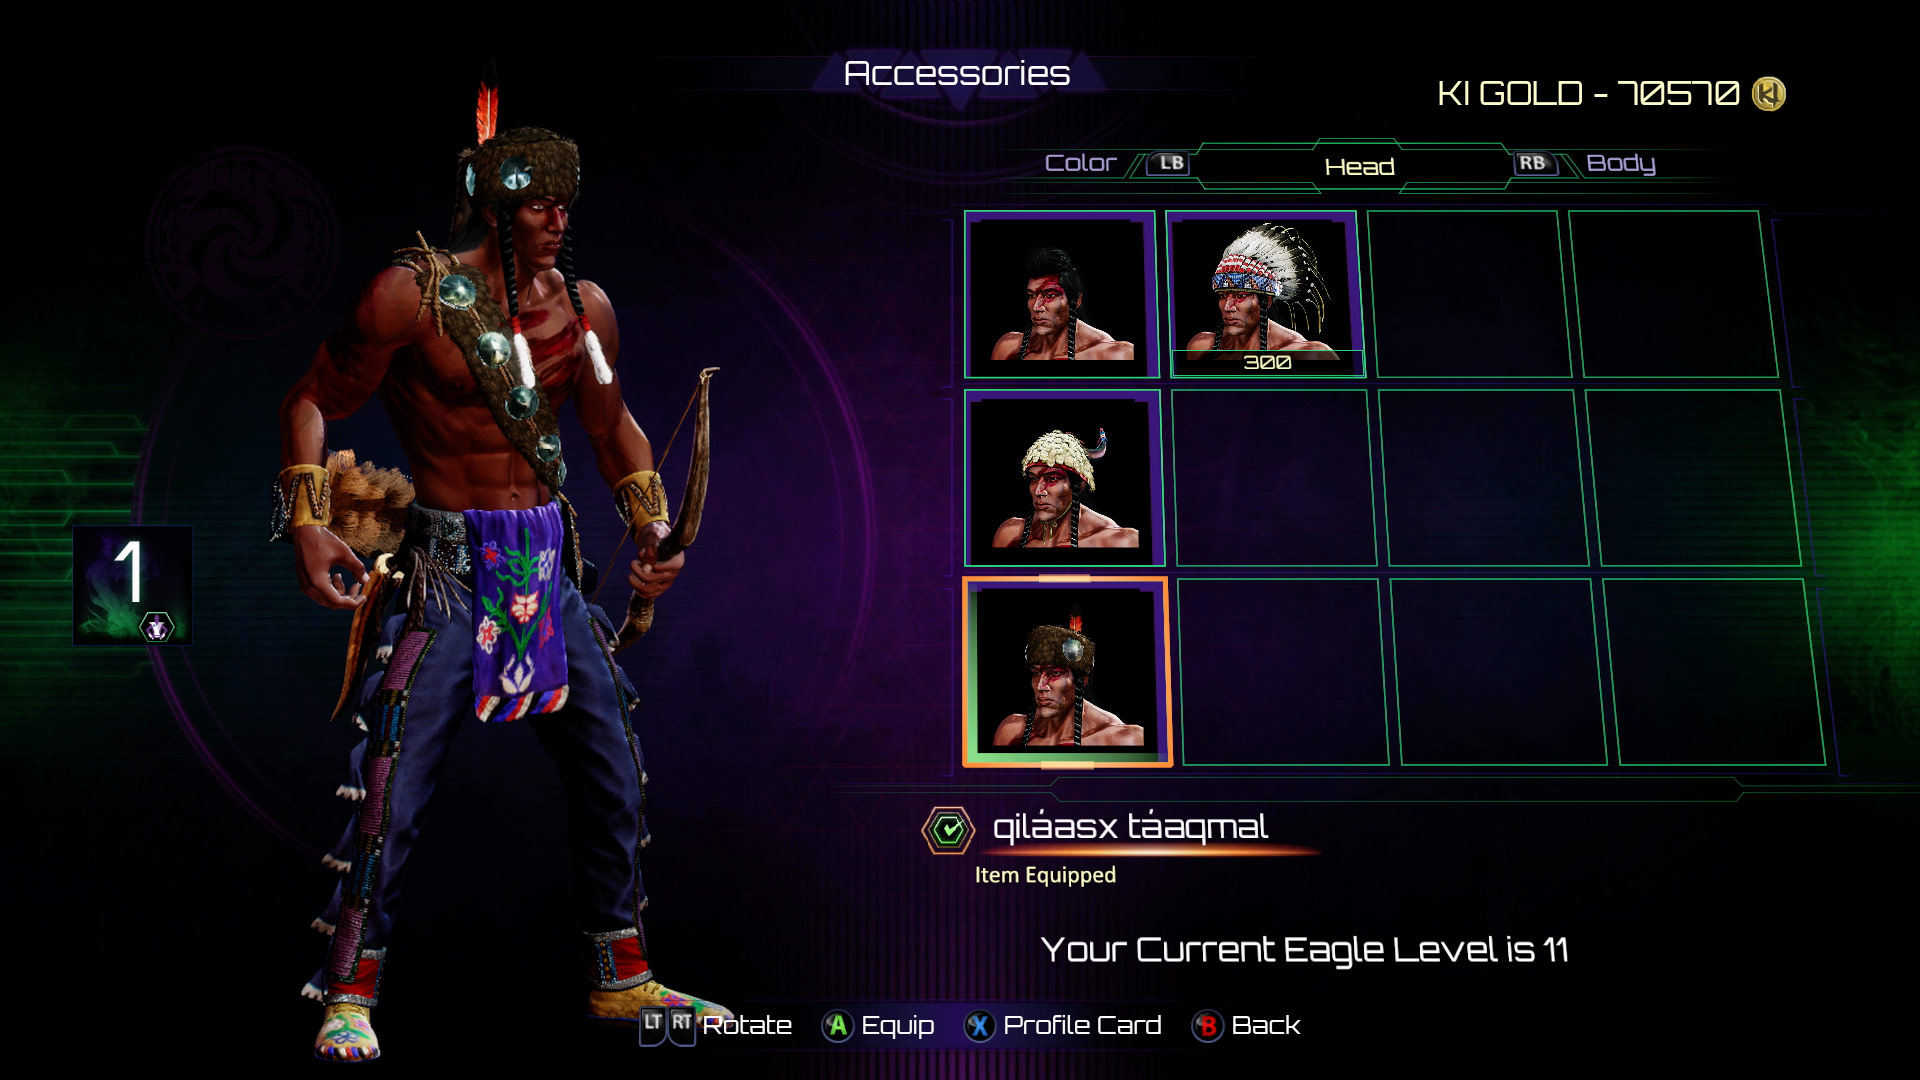 Eagle's accessories in Killer Instinct 7 out of 8 image gallery